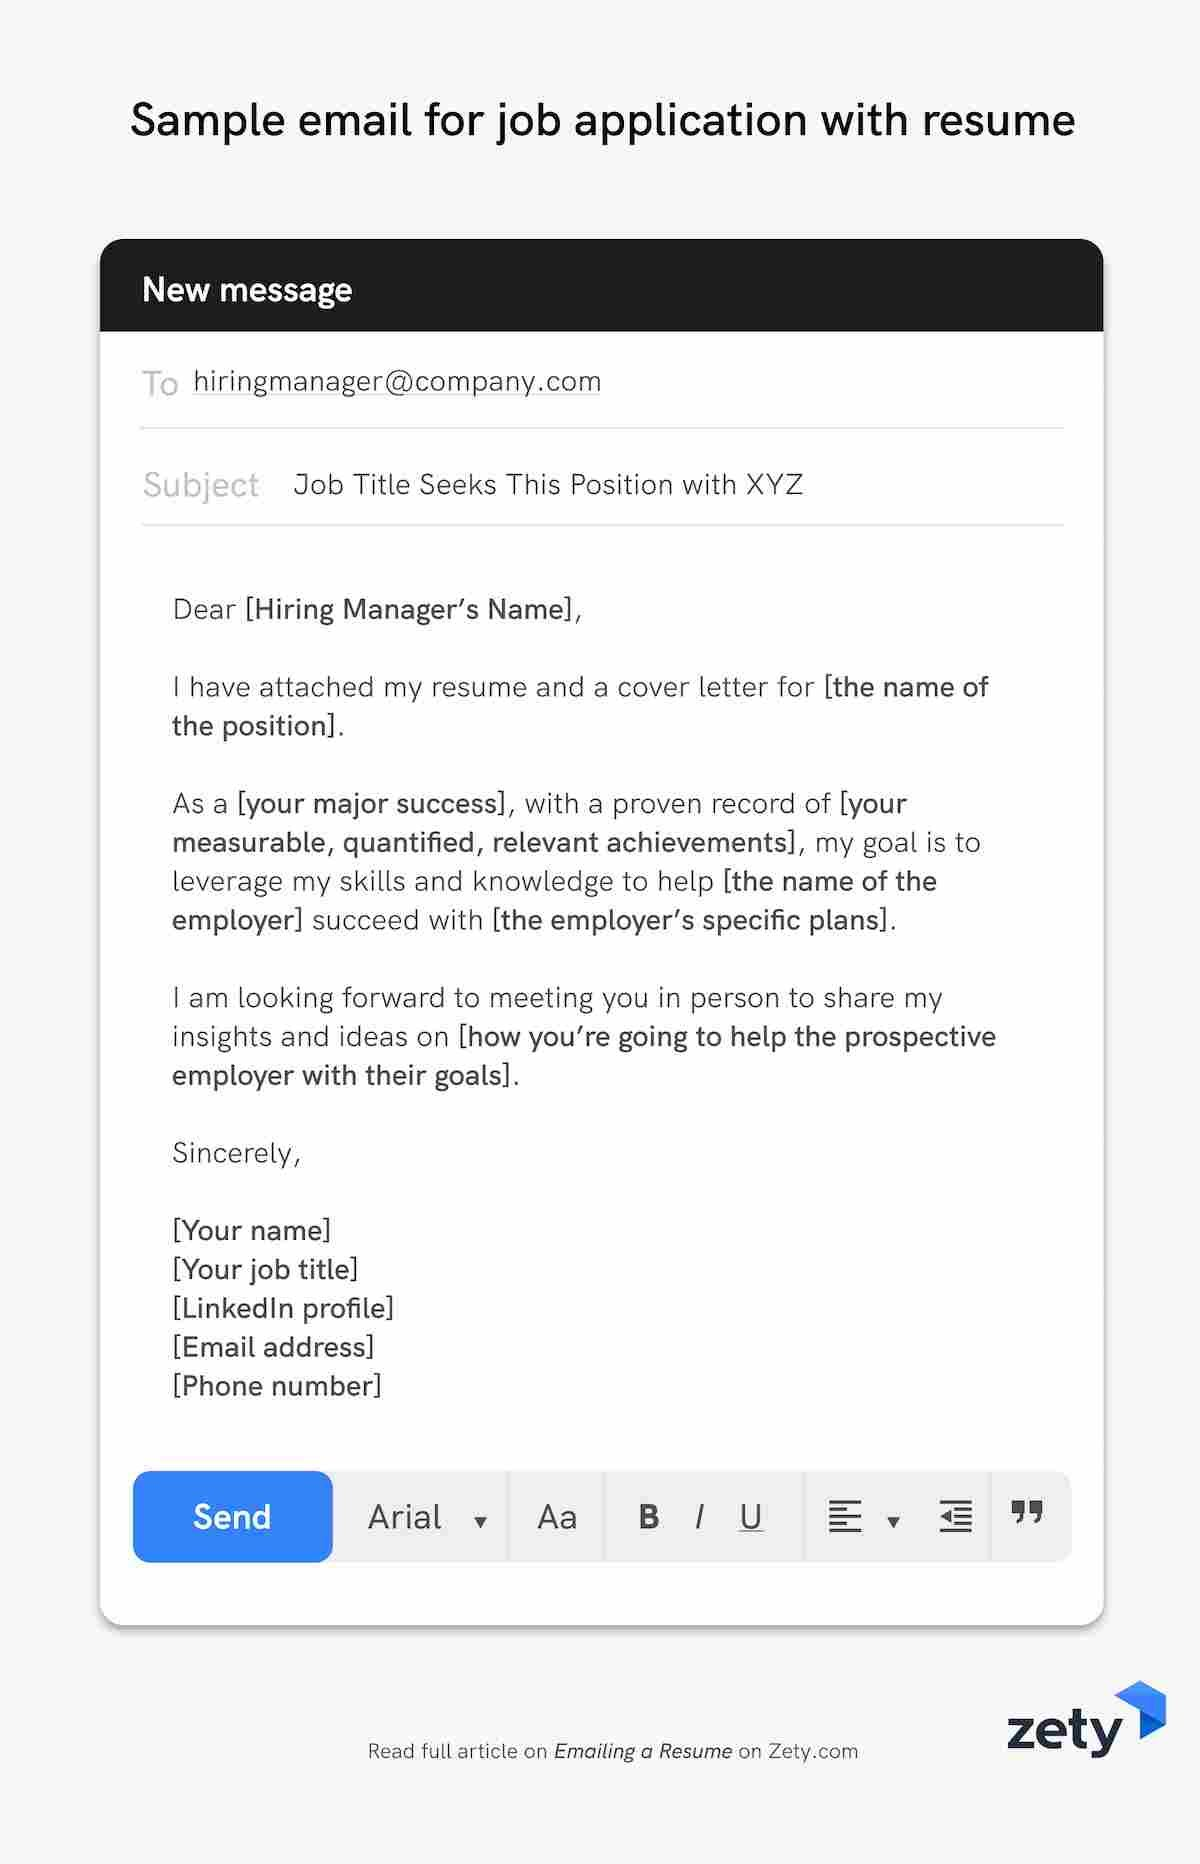 emailing resume job application email samples your template sample for with security Resume Email Your Resume Template